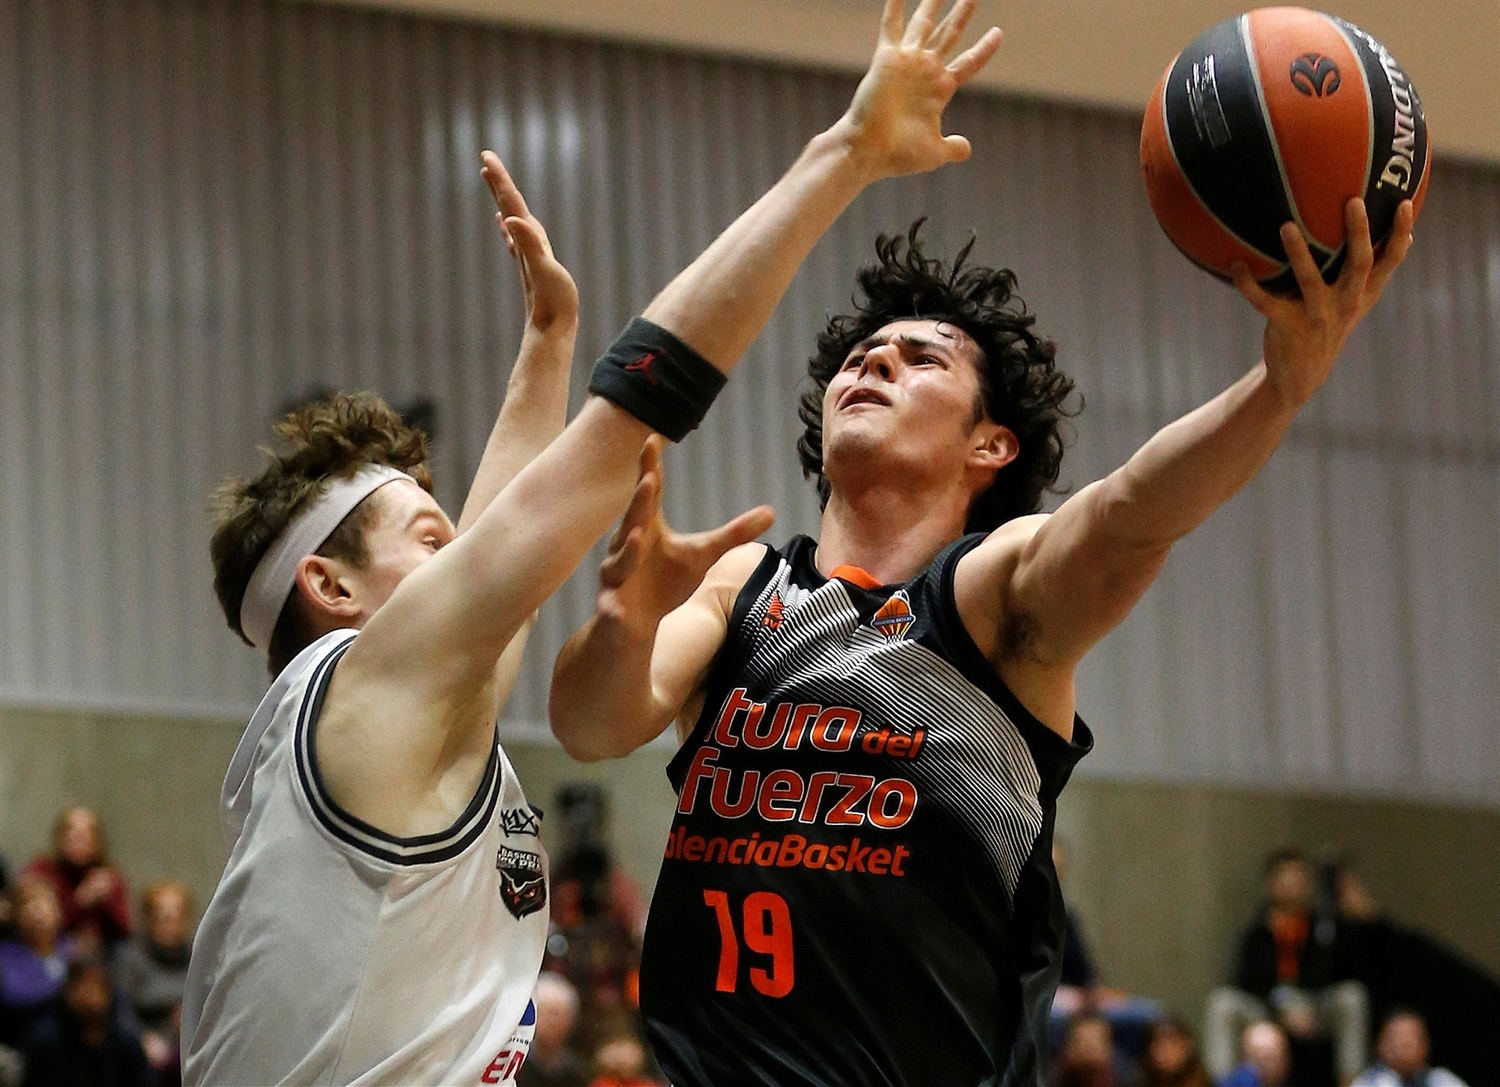 Alejandro Ruiz - U18 Valencia Basket (photo Miguel Angel Polo - Valencia) - JT18